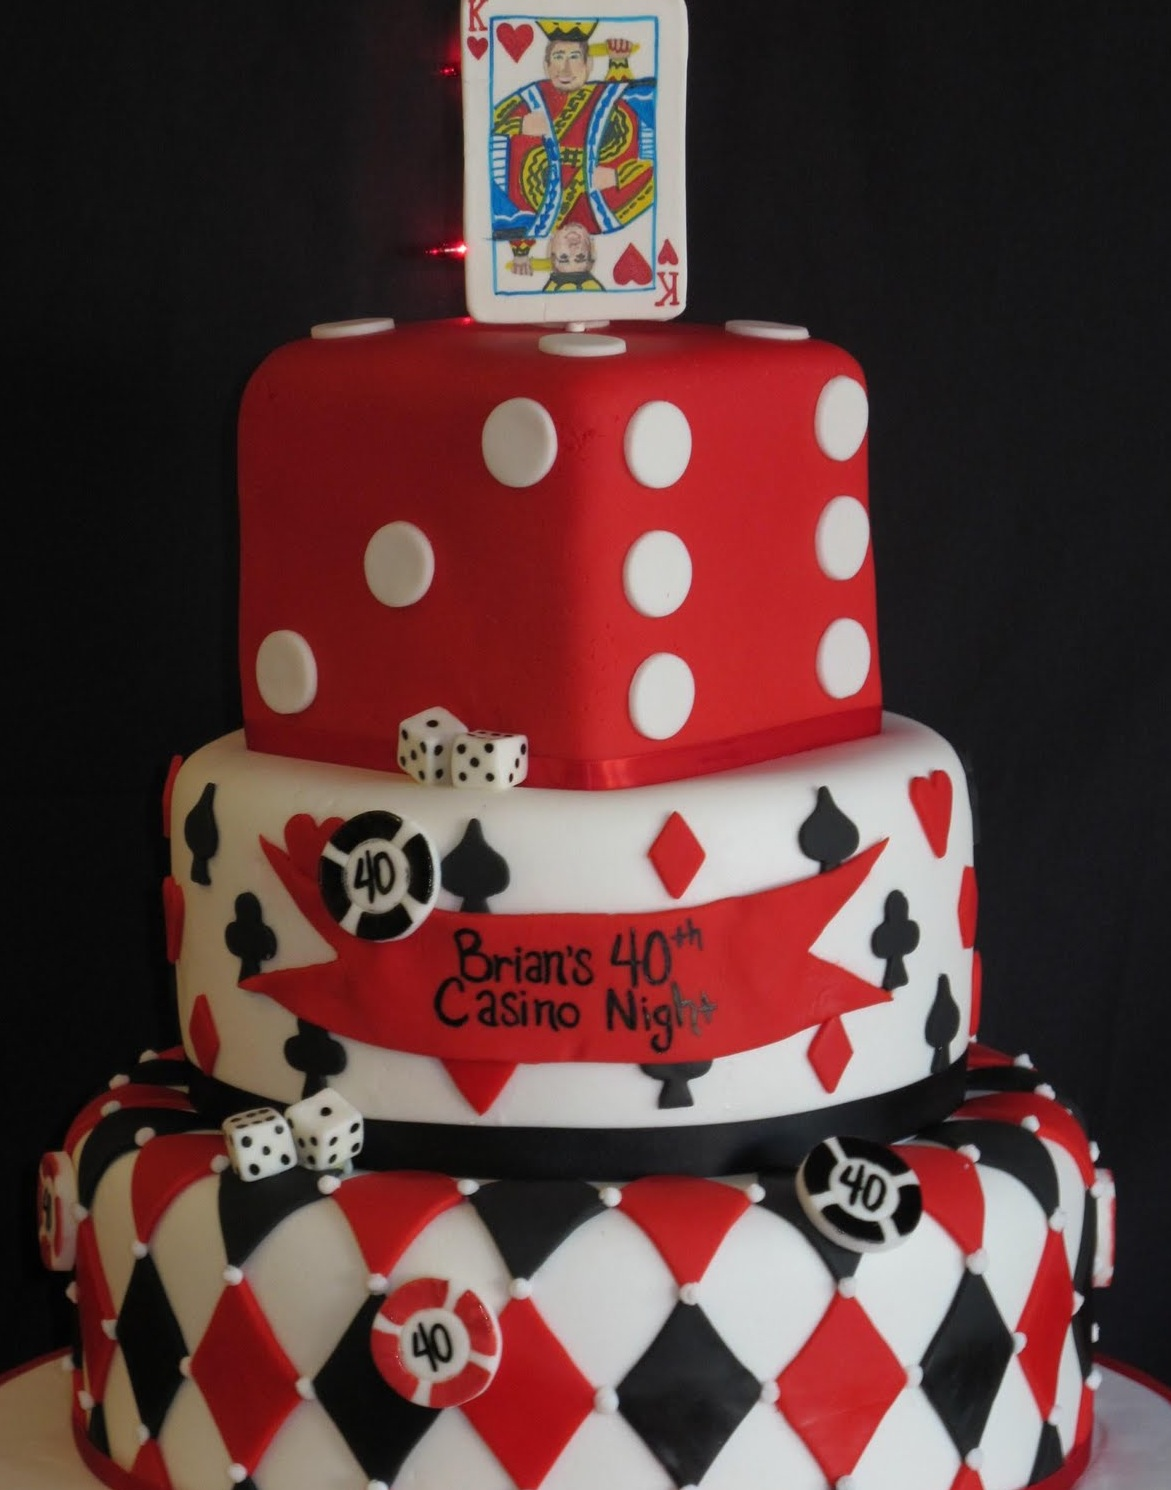 poker-cards-casino-theme-cakes-cupcakes-mumbai-22